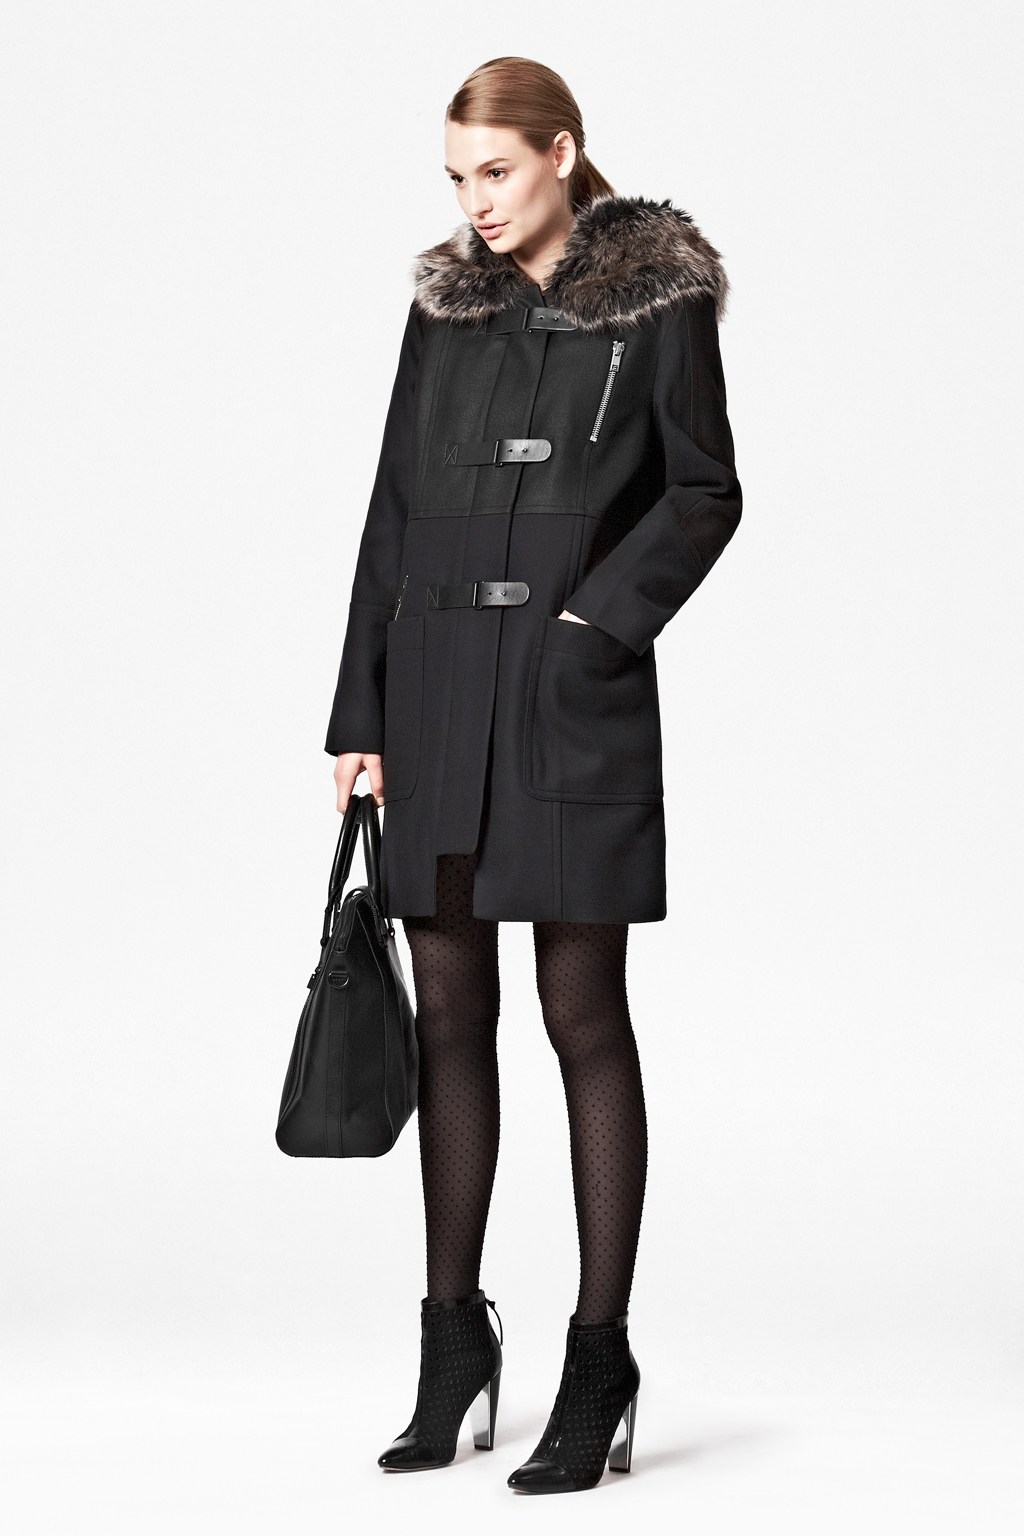 Battersea wool duffle coat - French Connection - Telegraph